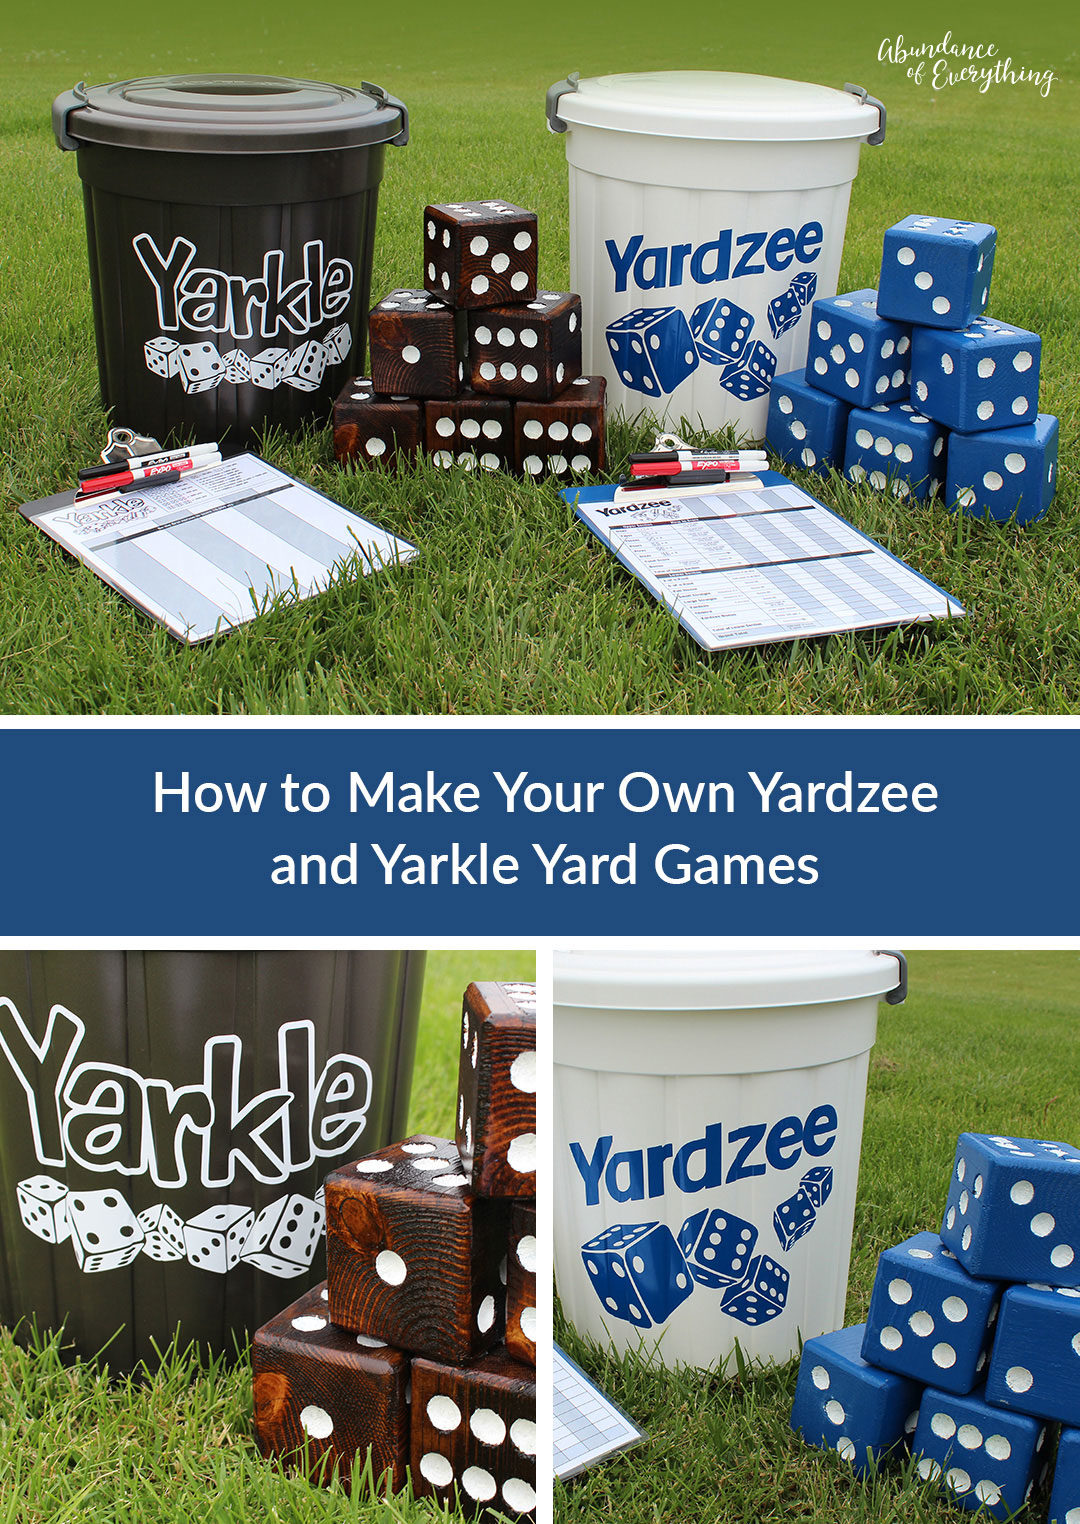 Build Your Own Garden Games